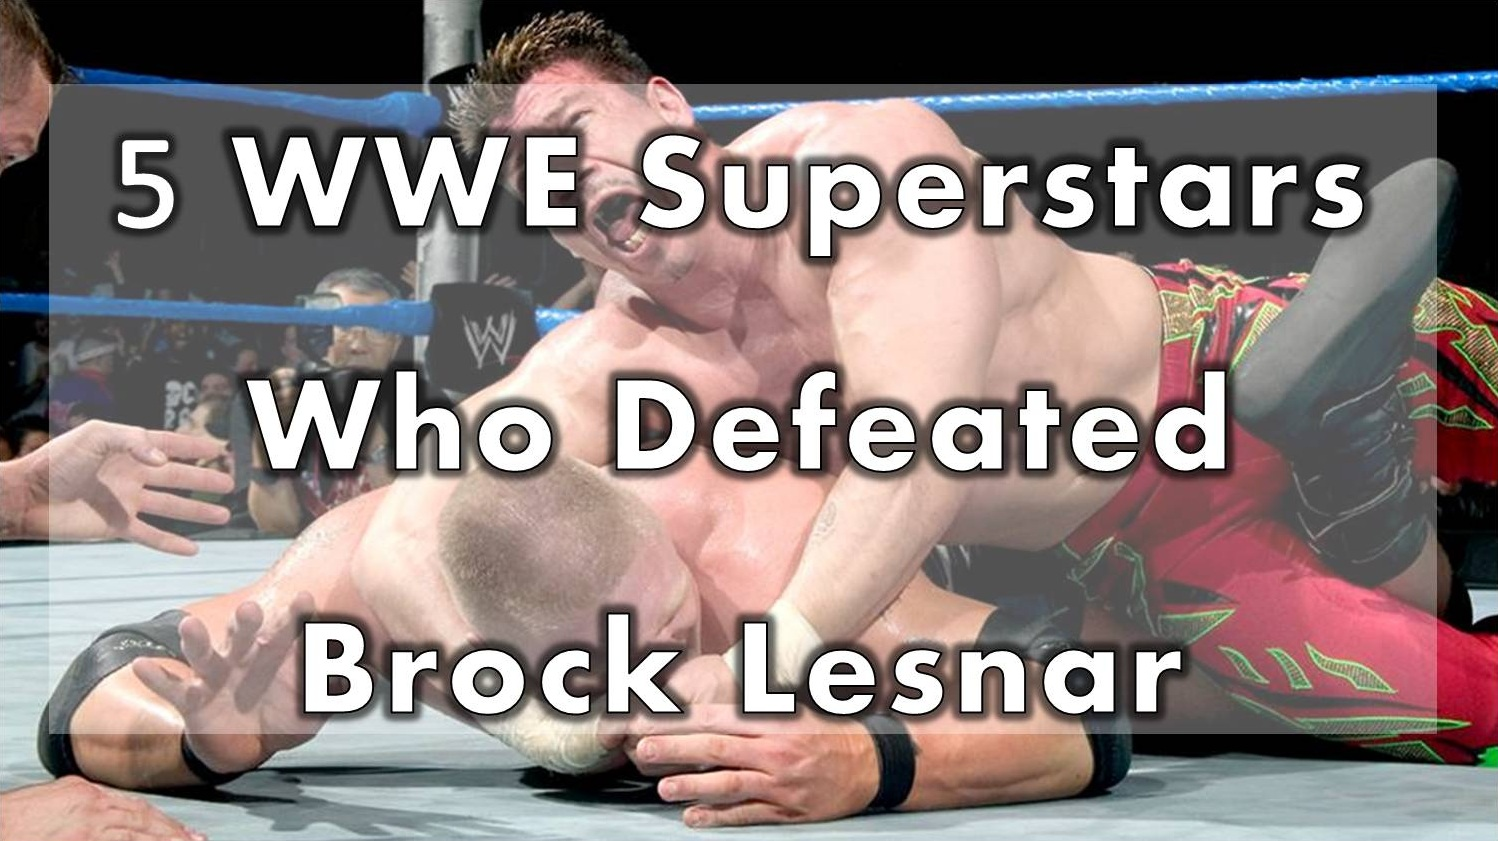 5 superstars who defeated brock